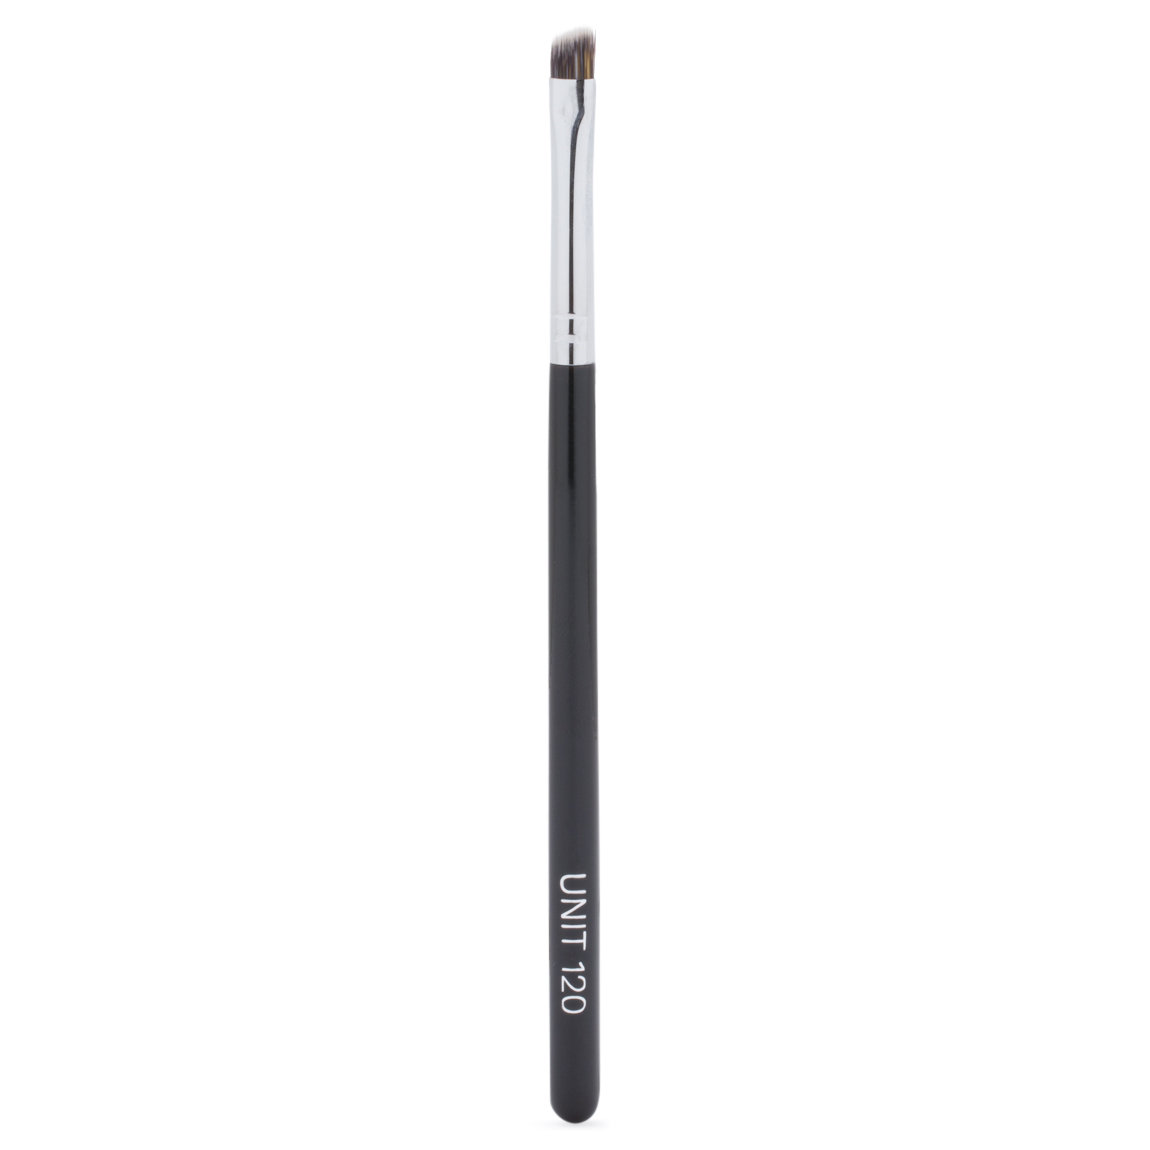 UNIT 120 Eye Brush